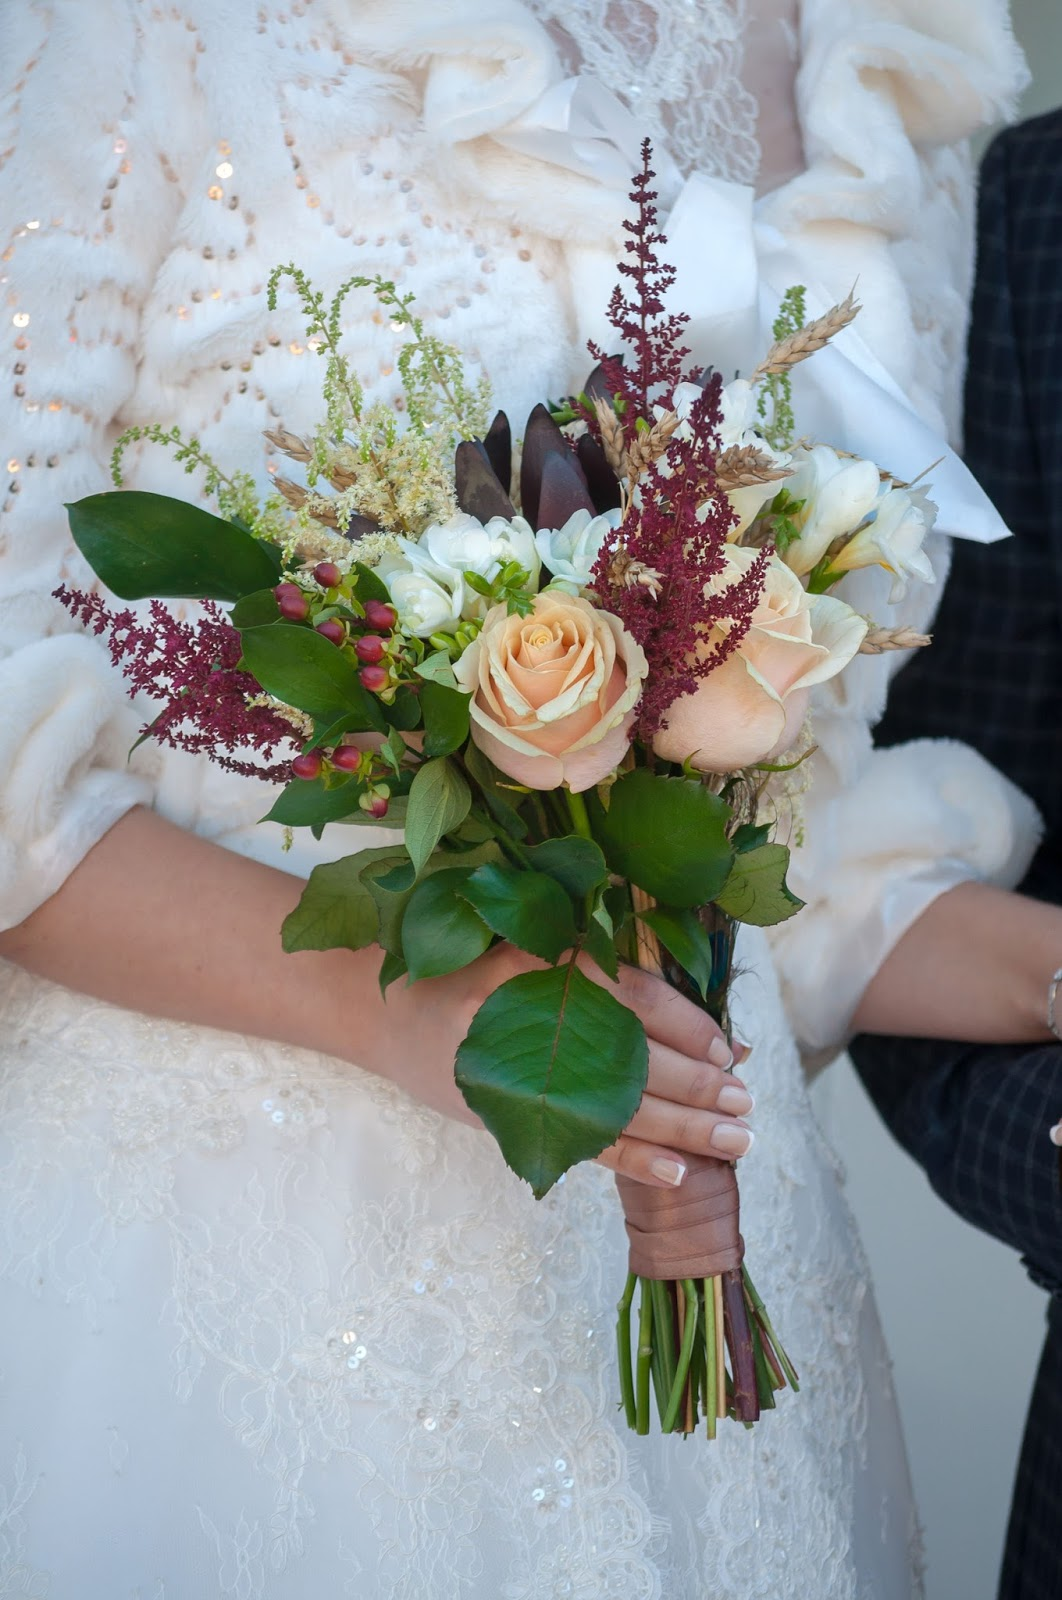 Rustic 4 weddings bride wedding day bouquet pictures for Wedding day decorations